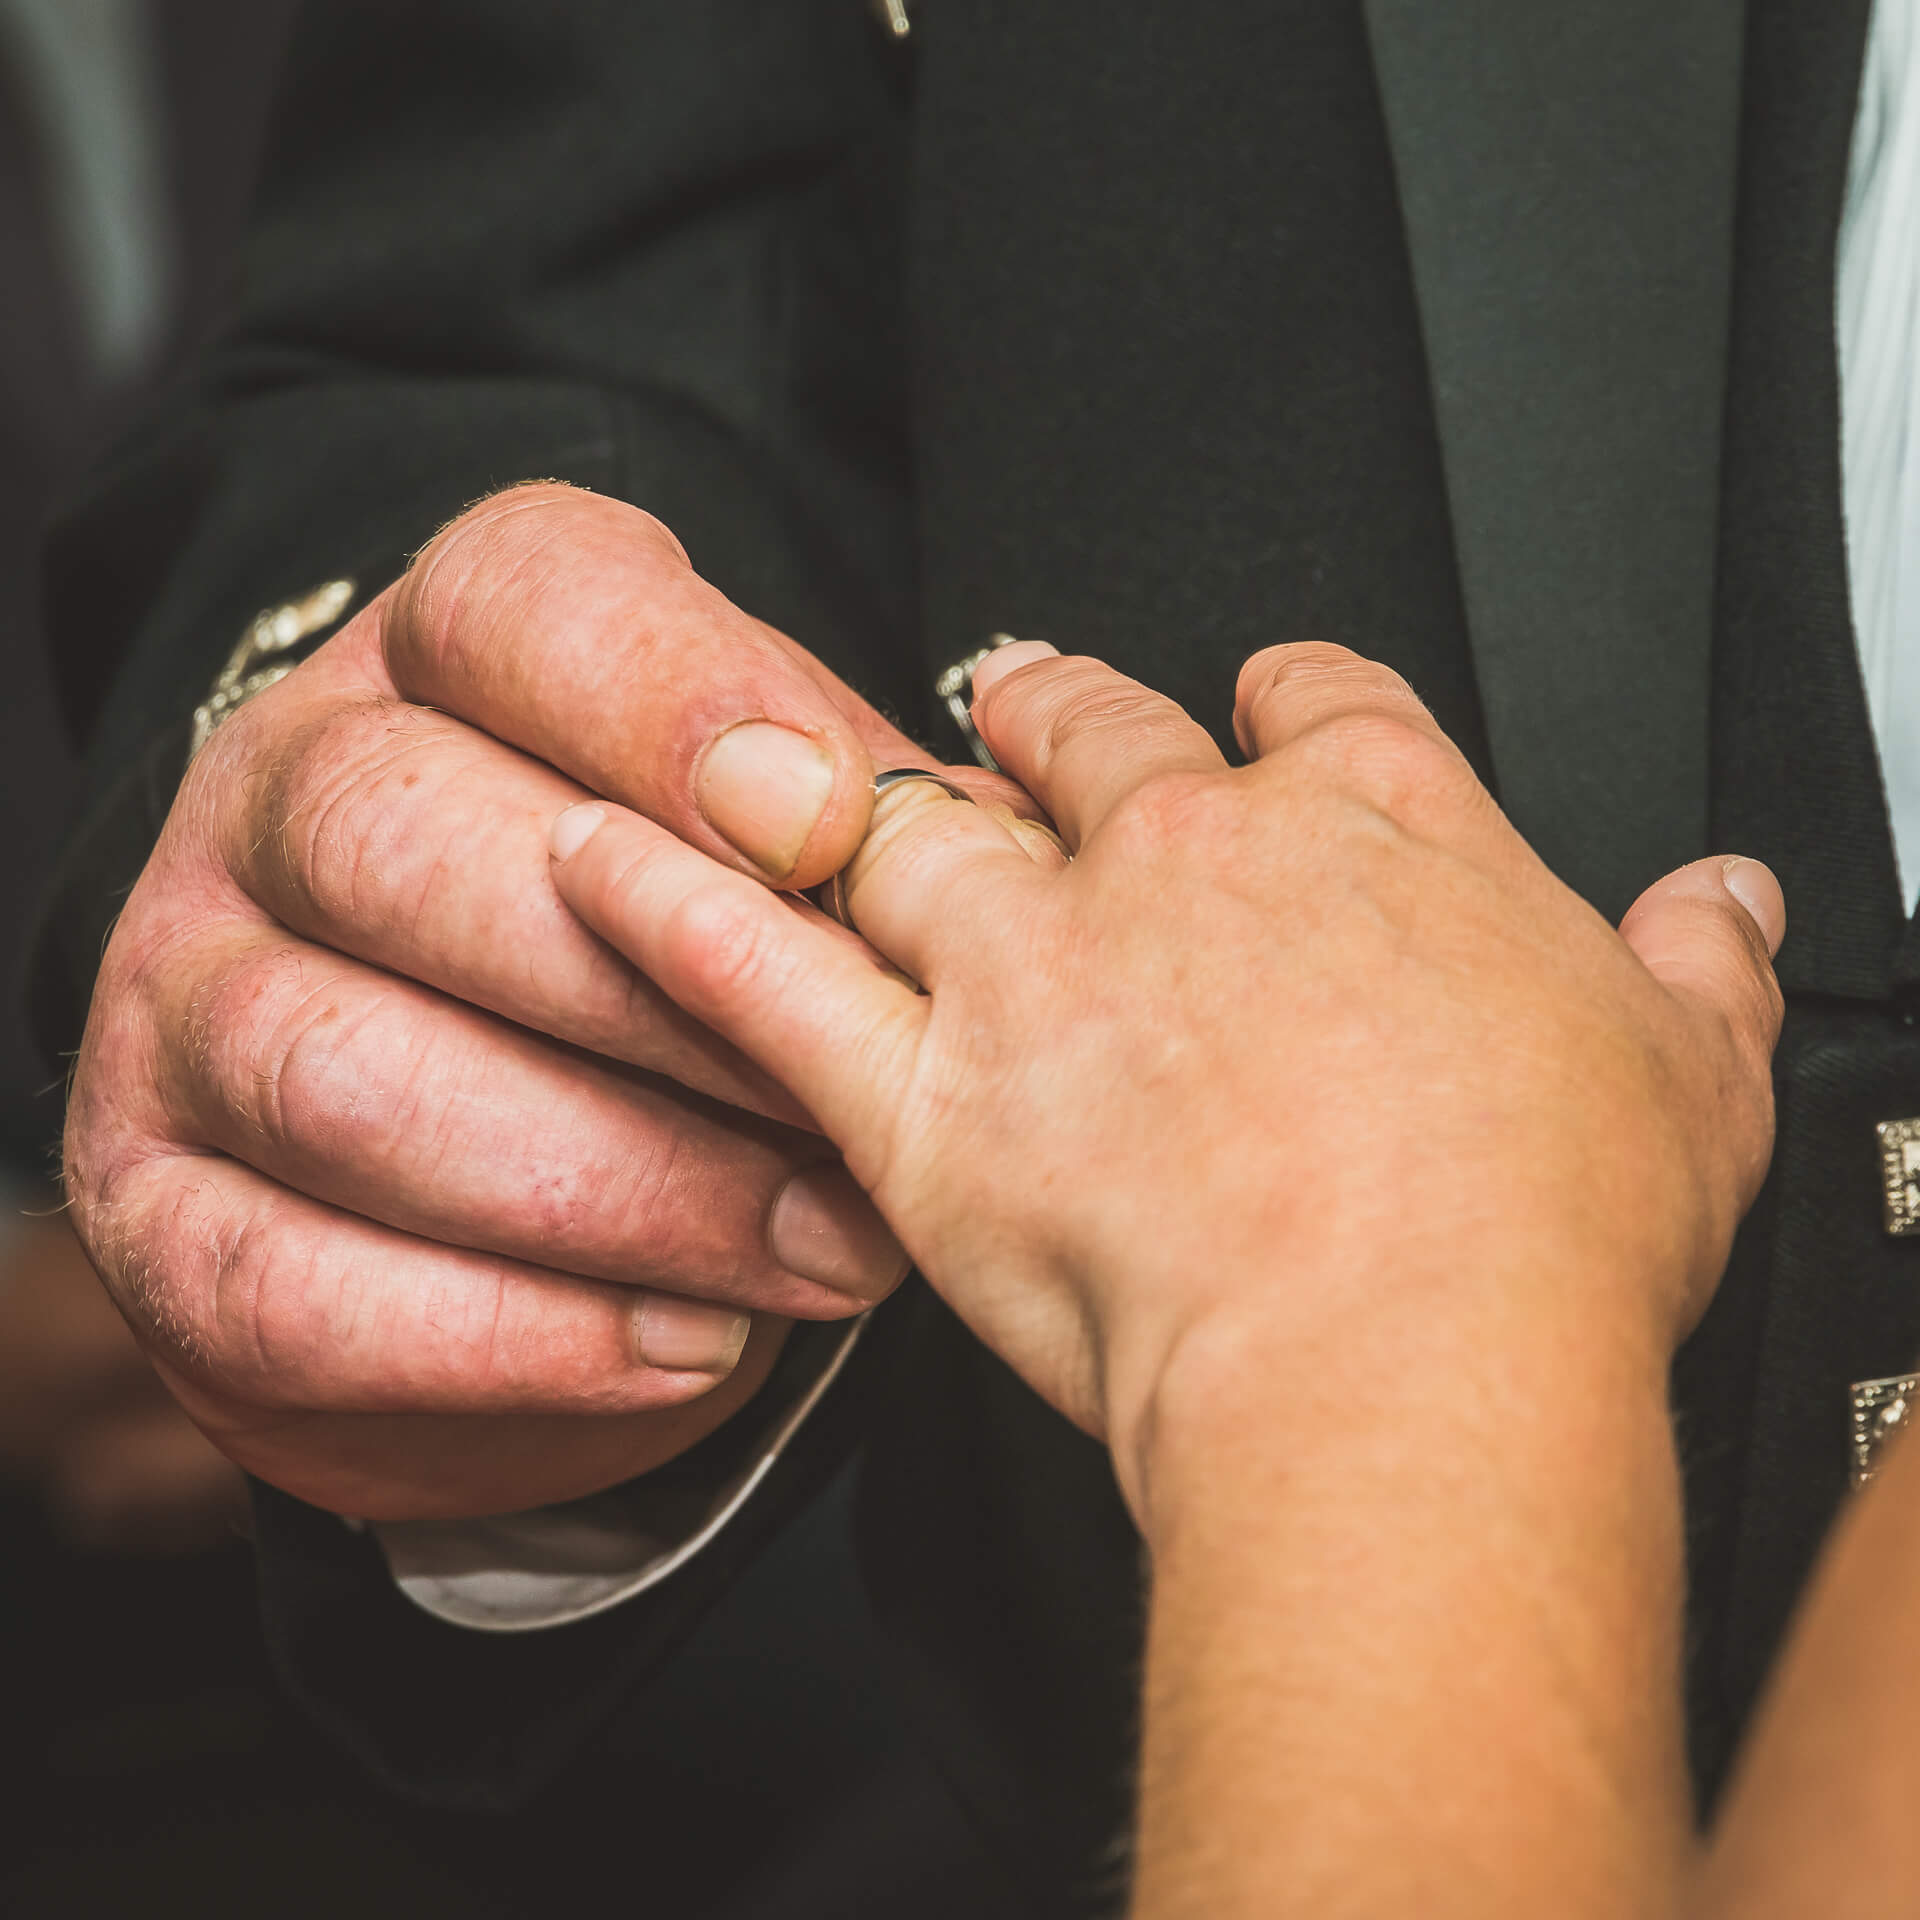 A close-up shot of the Bride and Grooms hands as he places the ring on the Brides finger.